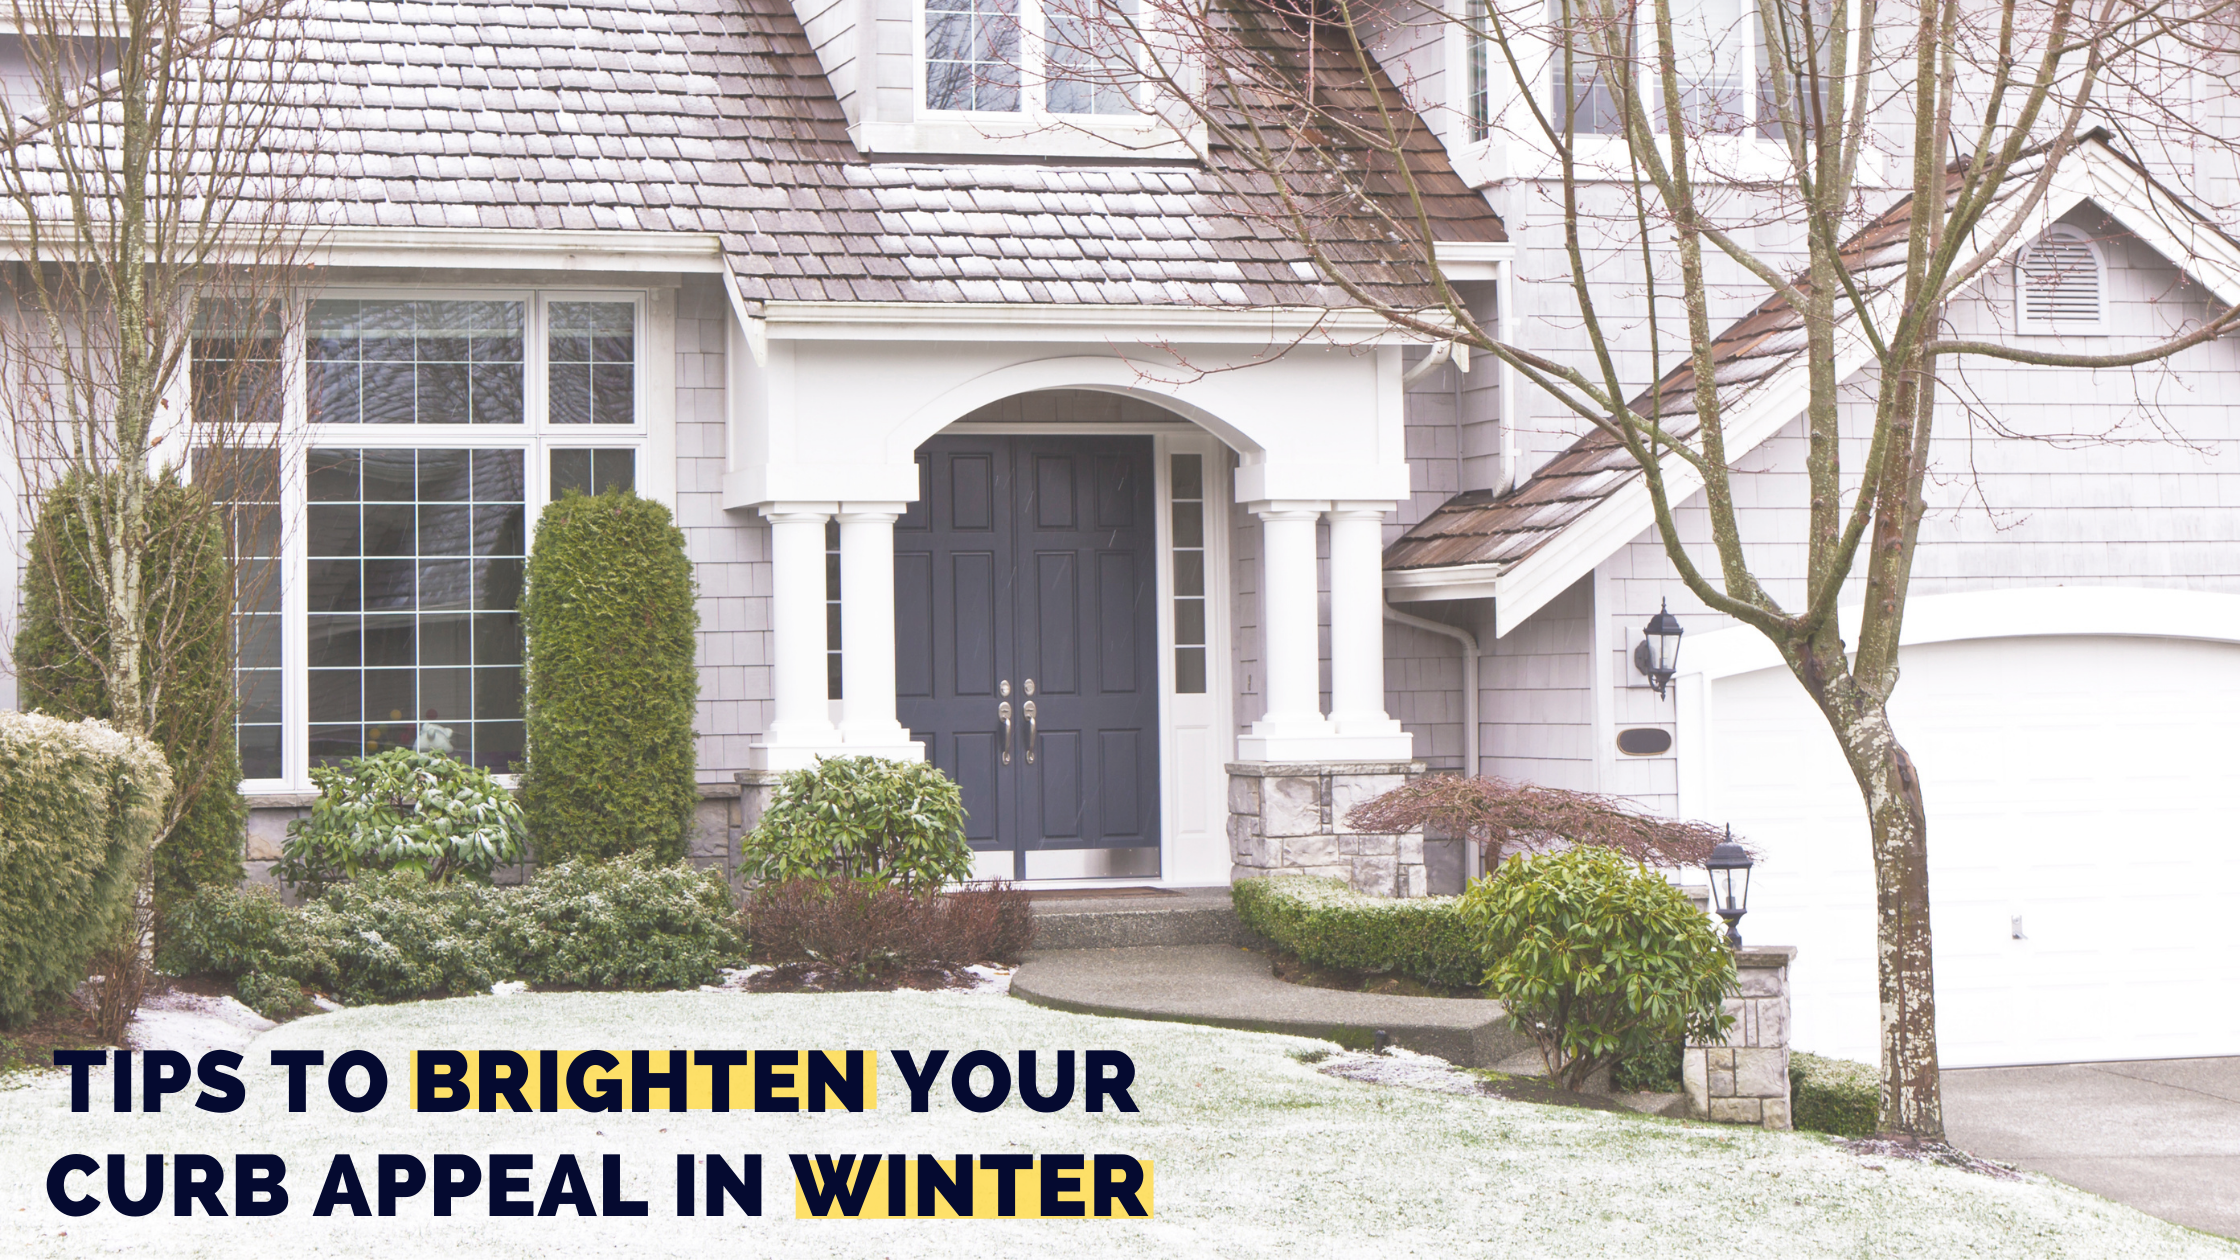 Tips to Brighten Your Curb Appeal in Winter